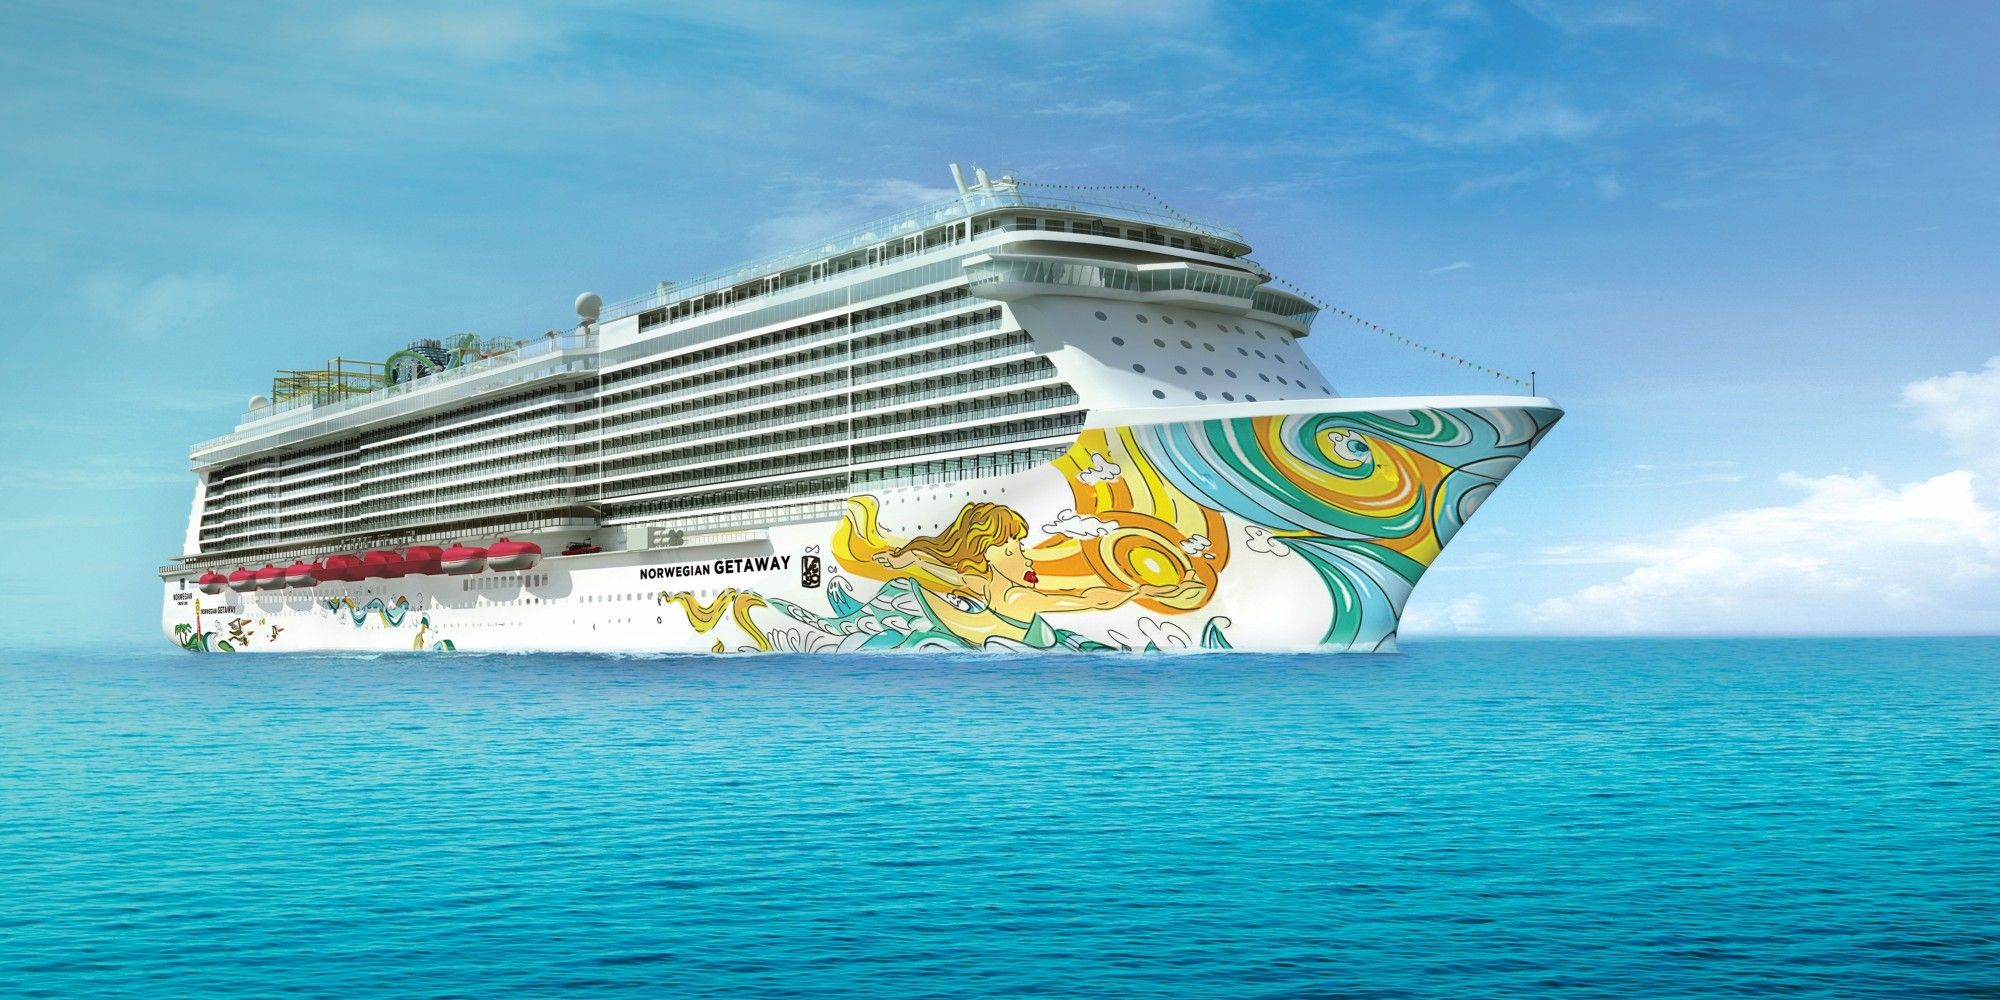 The Beautiful Cruise Ship In The Sea Book Now JourneyCook - Where is a cruise ship now